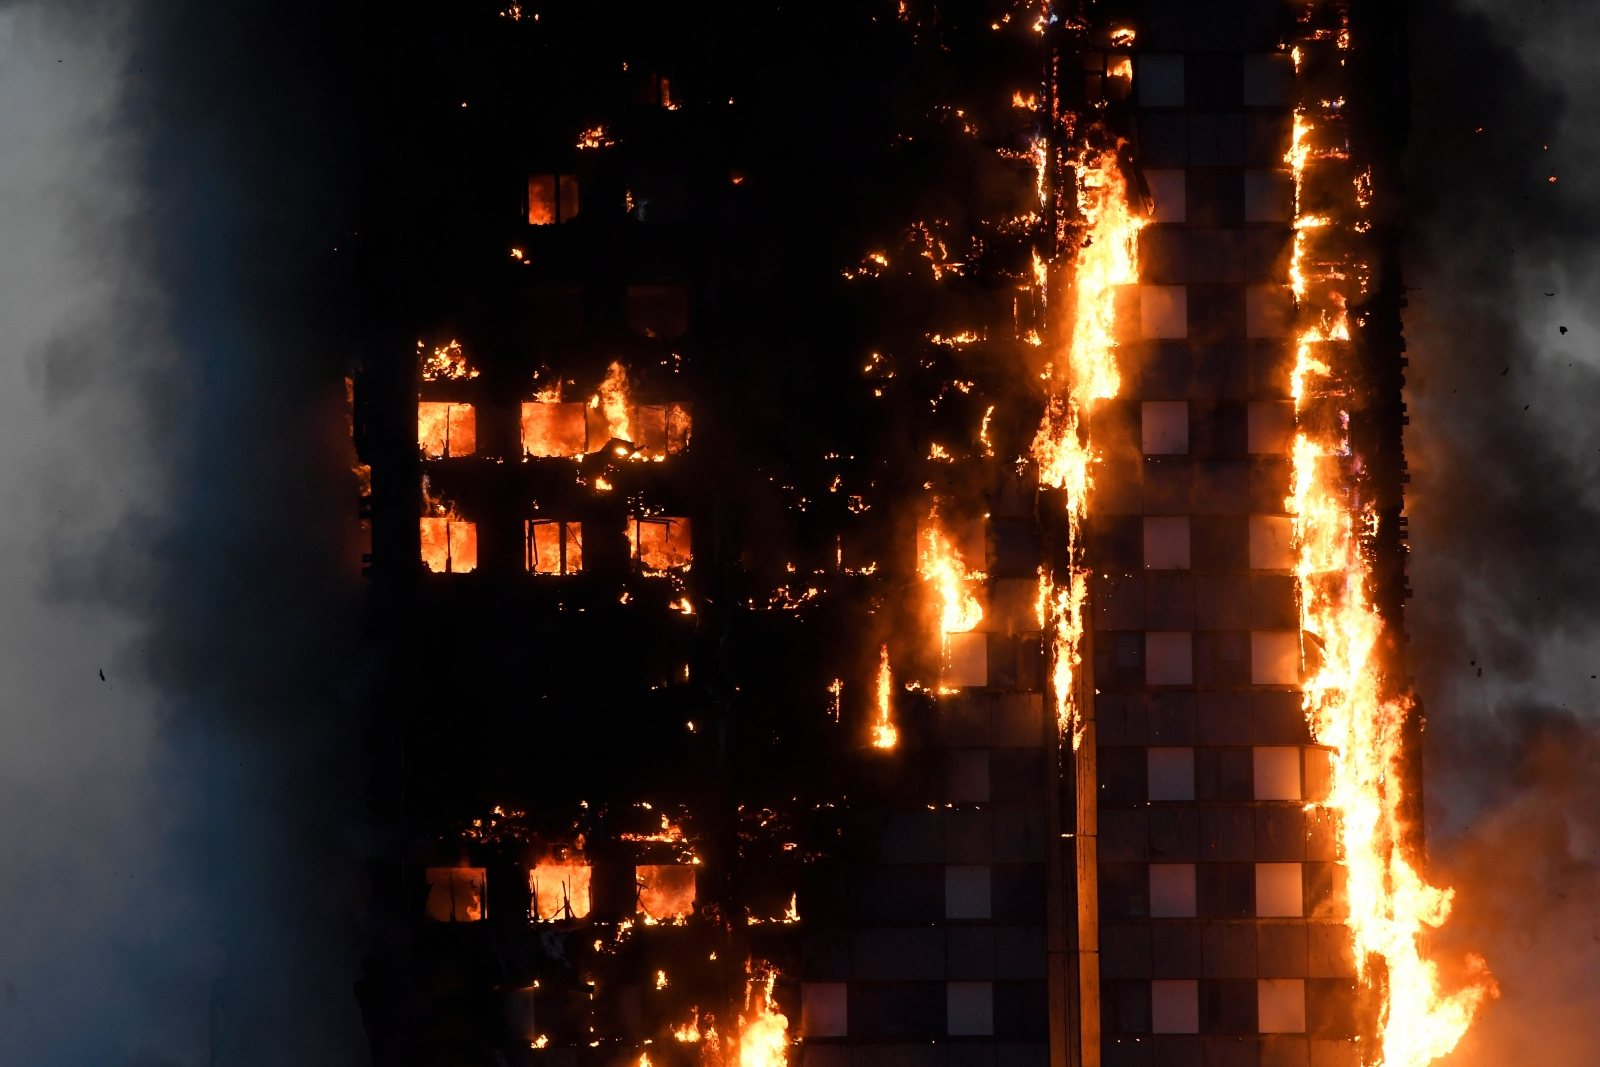 Grenfell Tower block fire Kensington west London